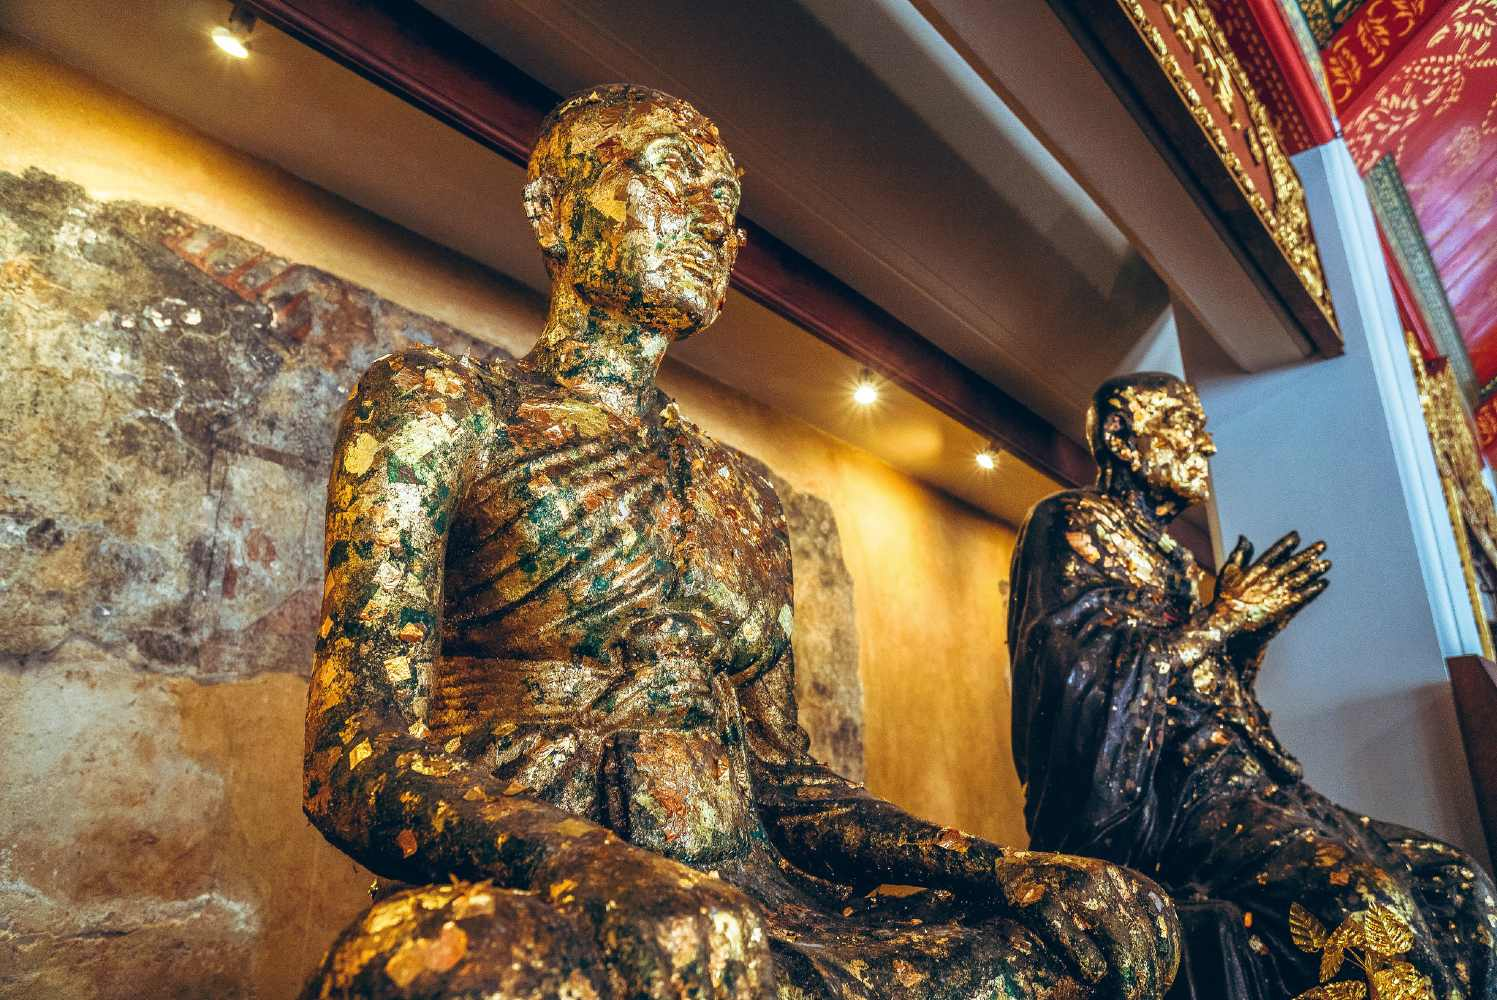 Golden statues of important monks at the Wat Pho temple complex in Bangkok